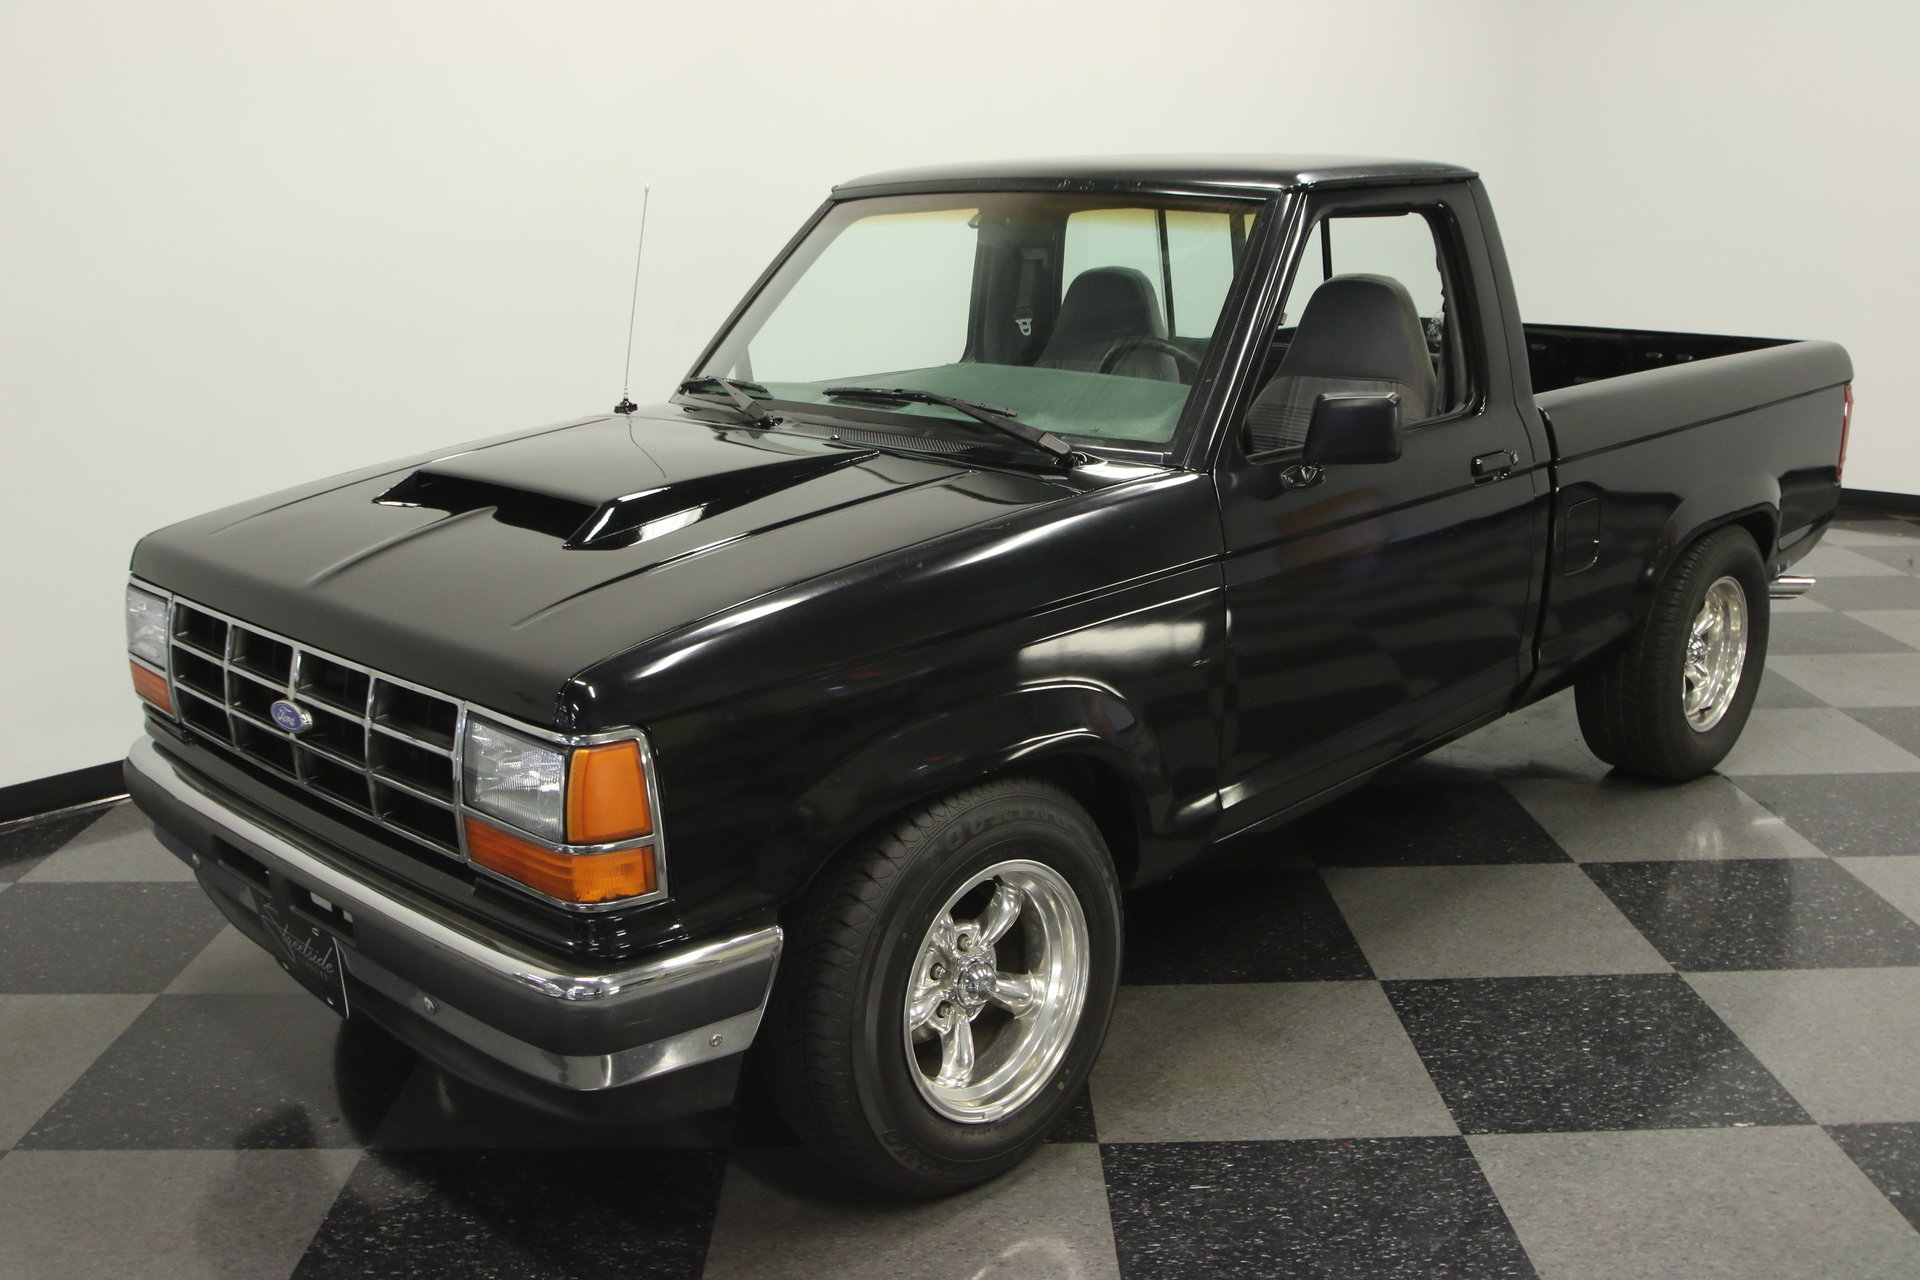 1991 ford ranger 5 0 v8 for sale 75833 mcg. Black Bedroom Furniture Sets. Home Design Ideas